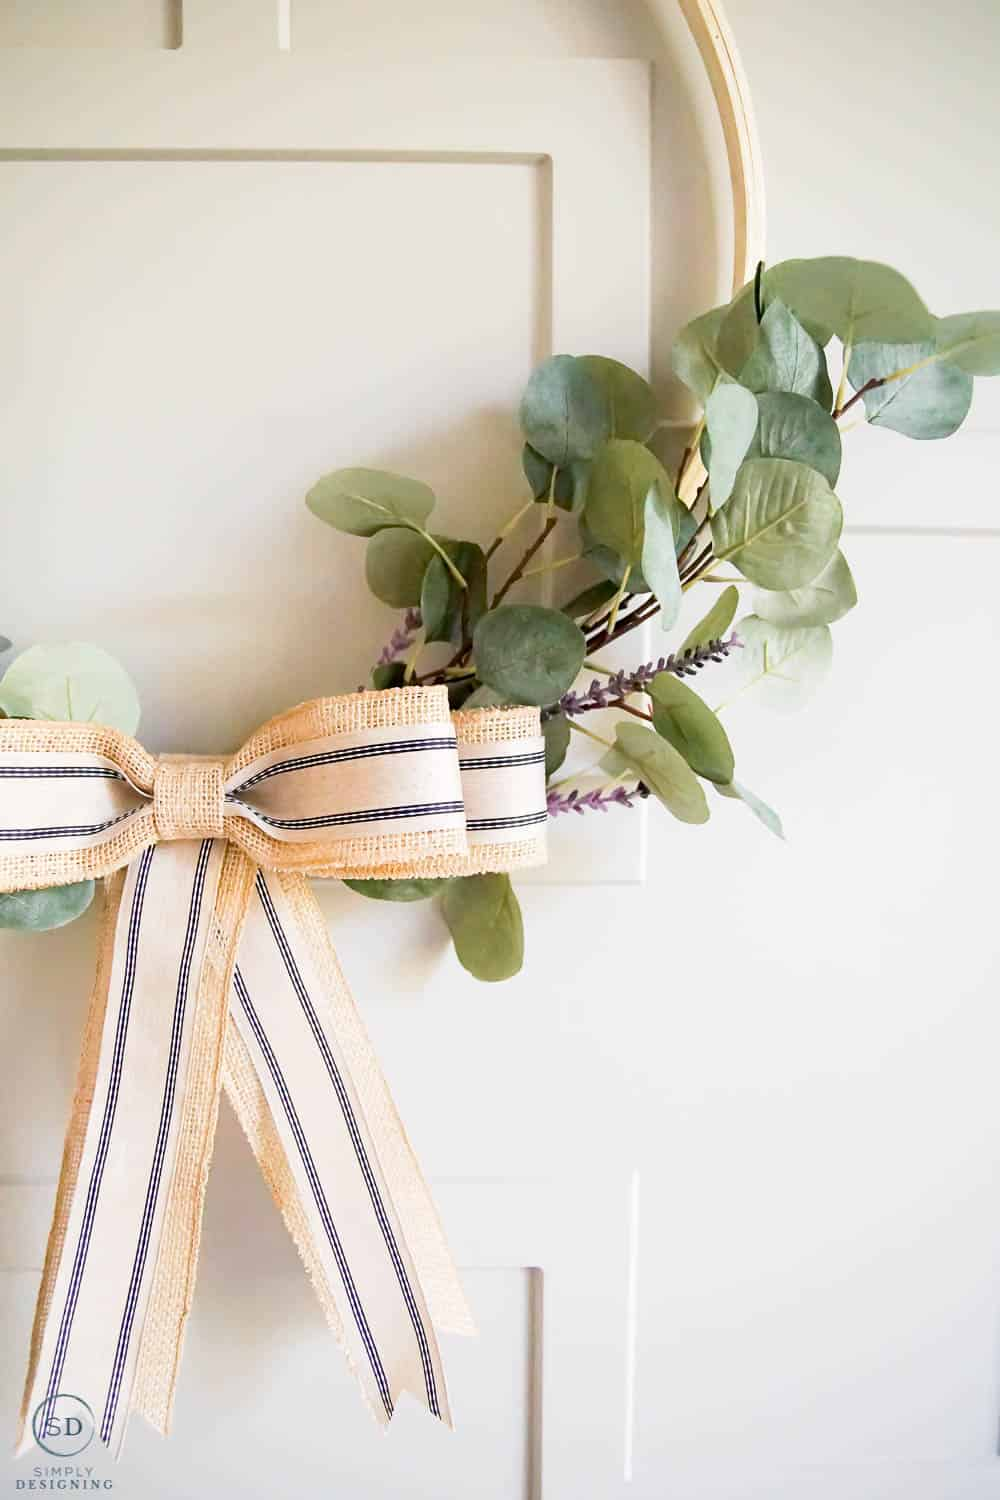 Summer Hoop Wreath with Eucalyptus and Lavender